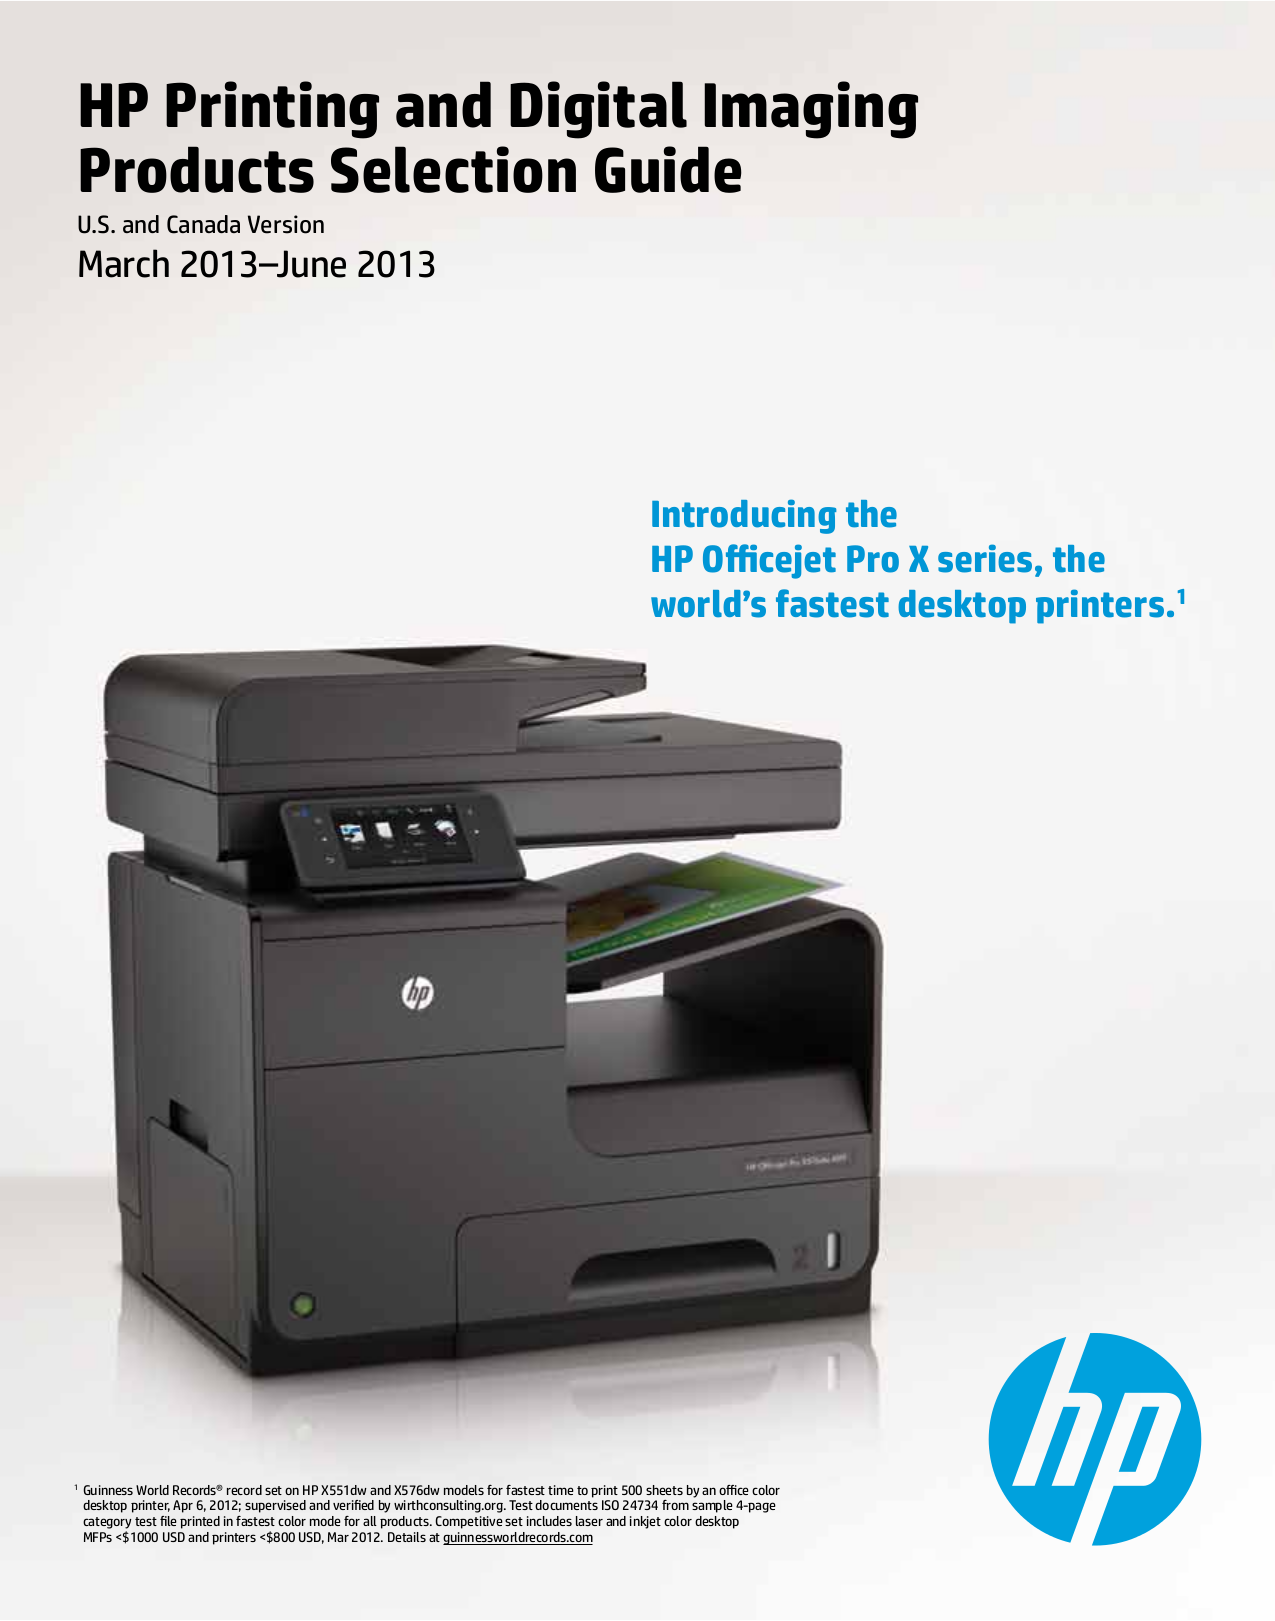 download free pdf for hp officejet 5500 multifunction printer manual rh umlib com HP Officejet 5500 Printer HP Printers All in One